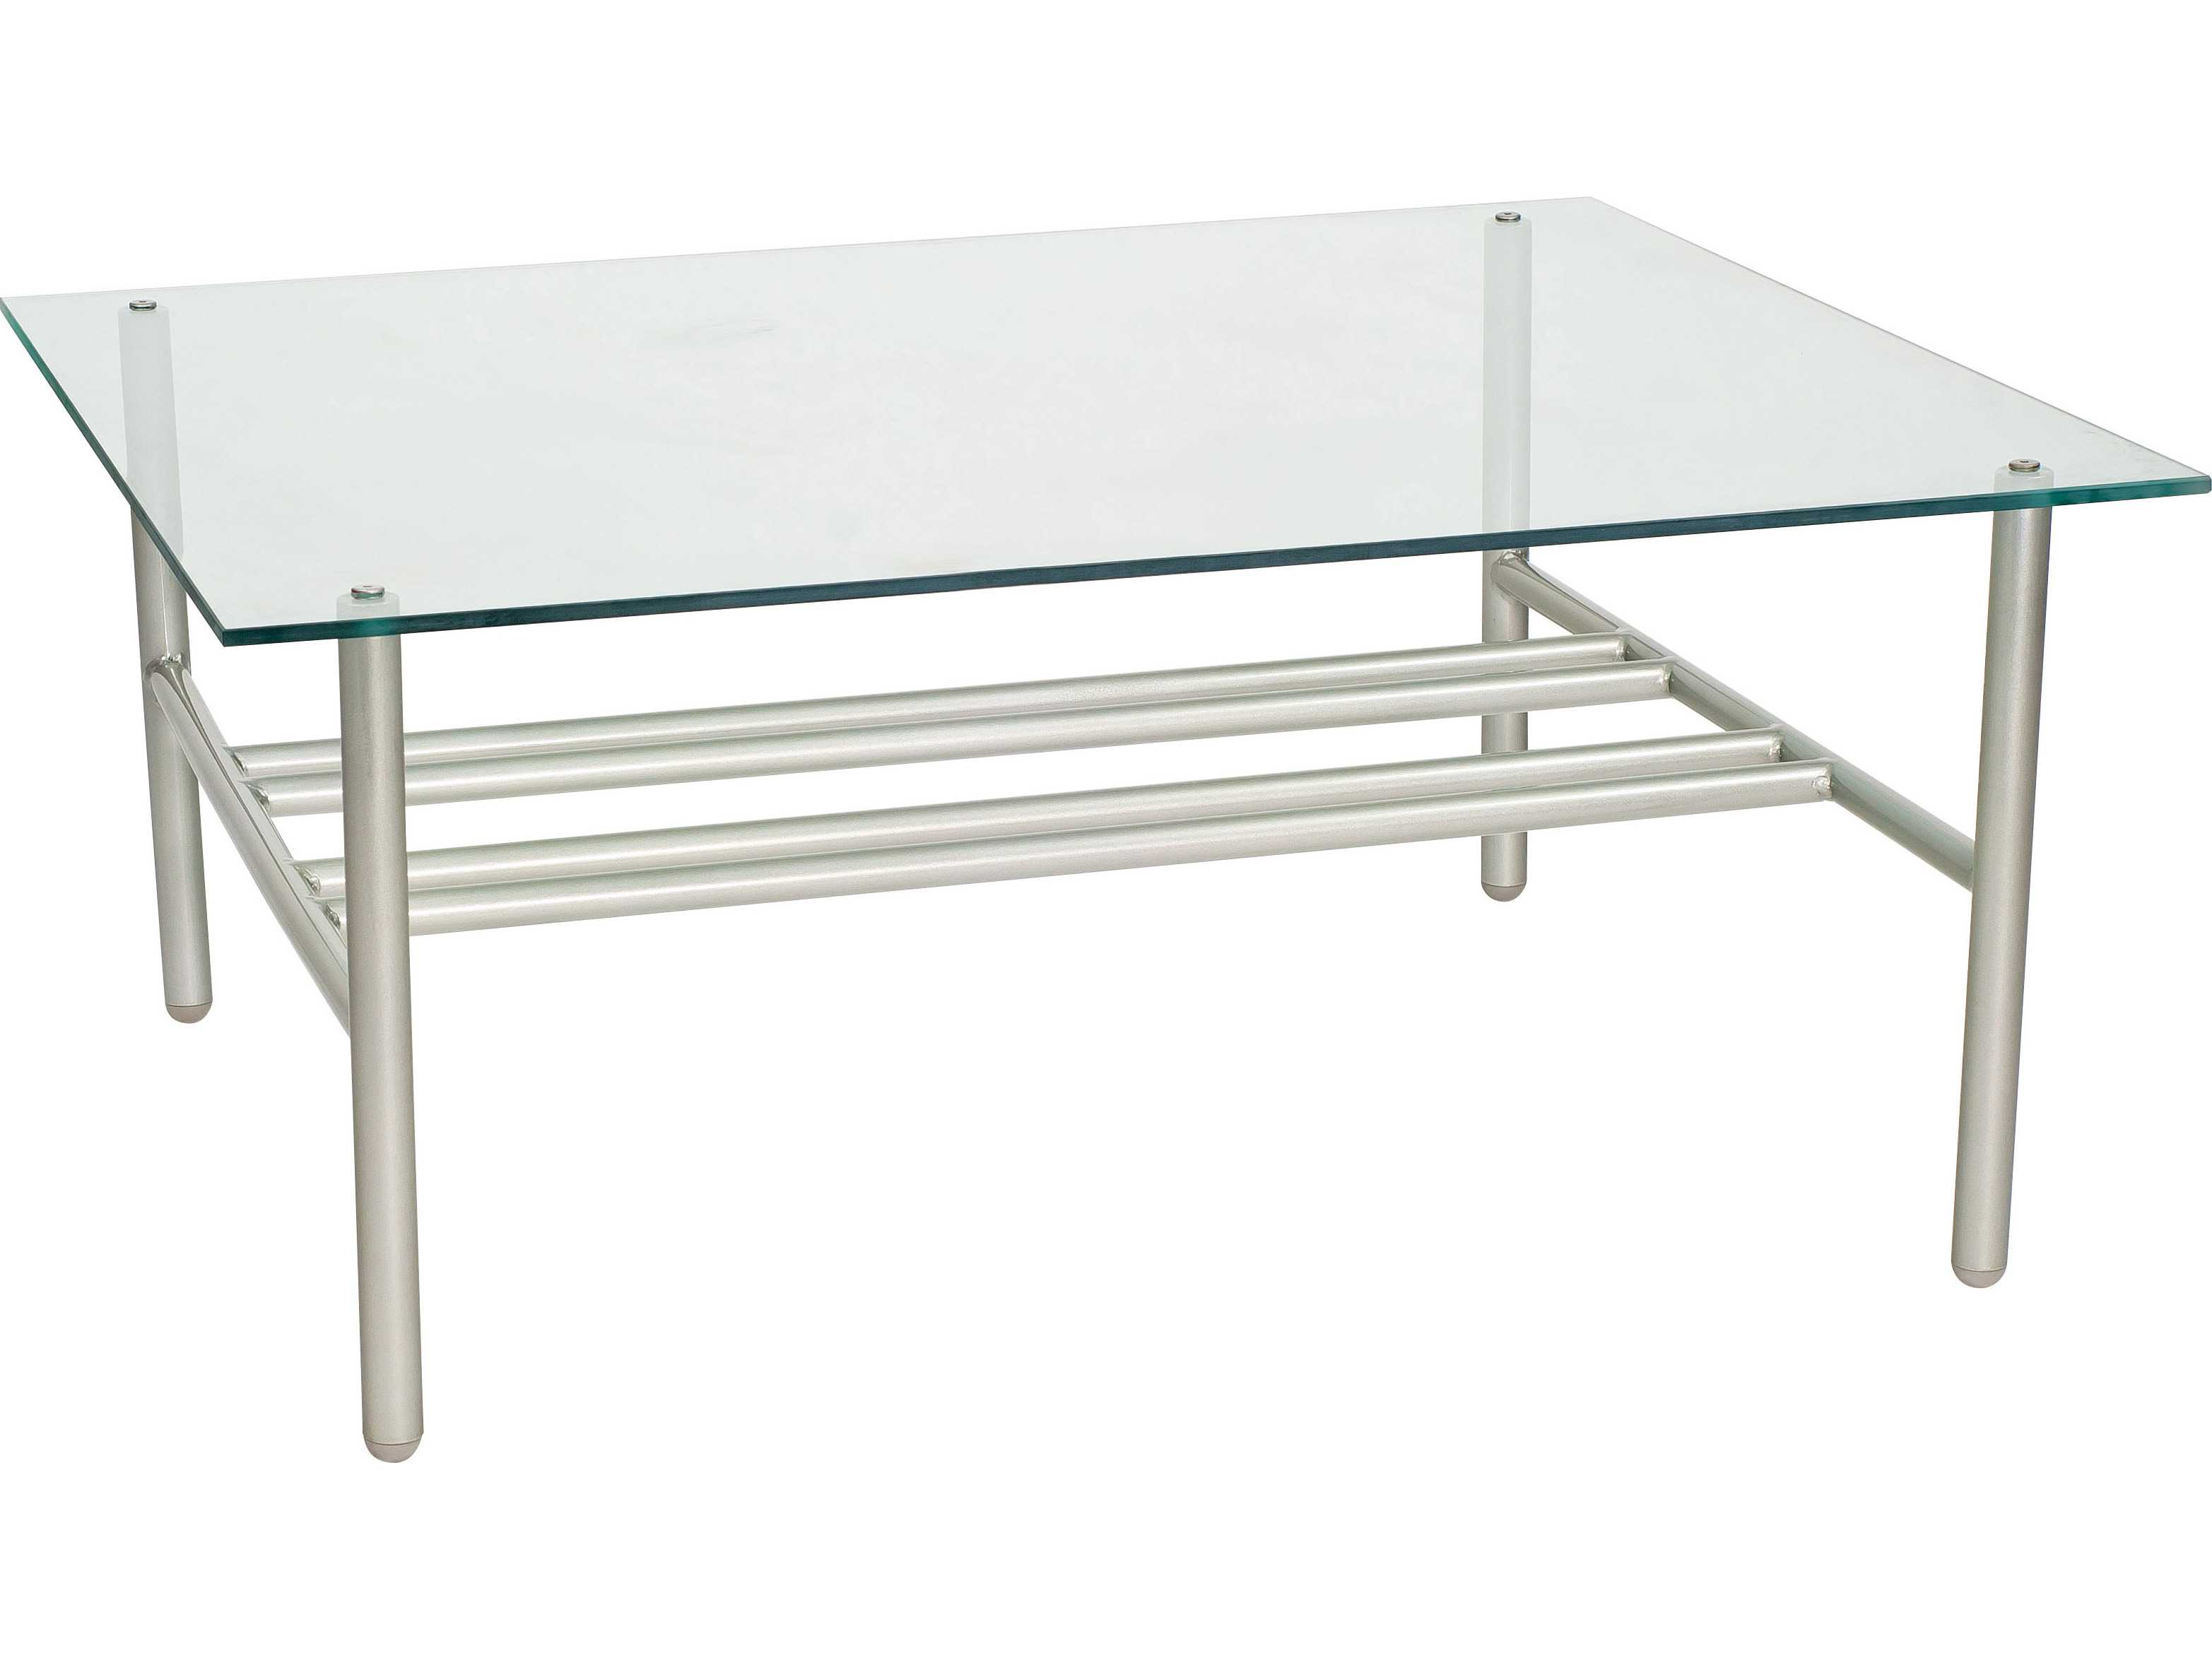 Woodard Uptown Wrought Iron 42 X 36 Rectangular Glass Top Coffee Table 2h0043